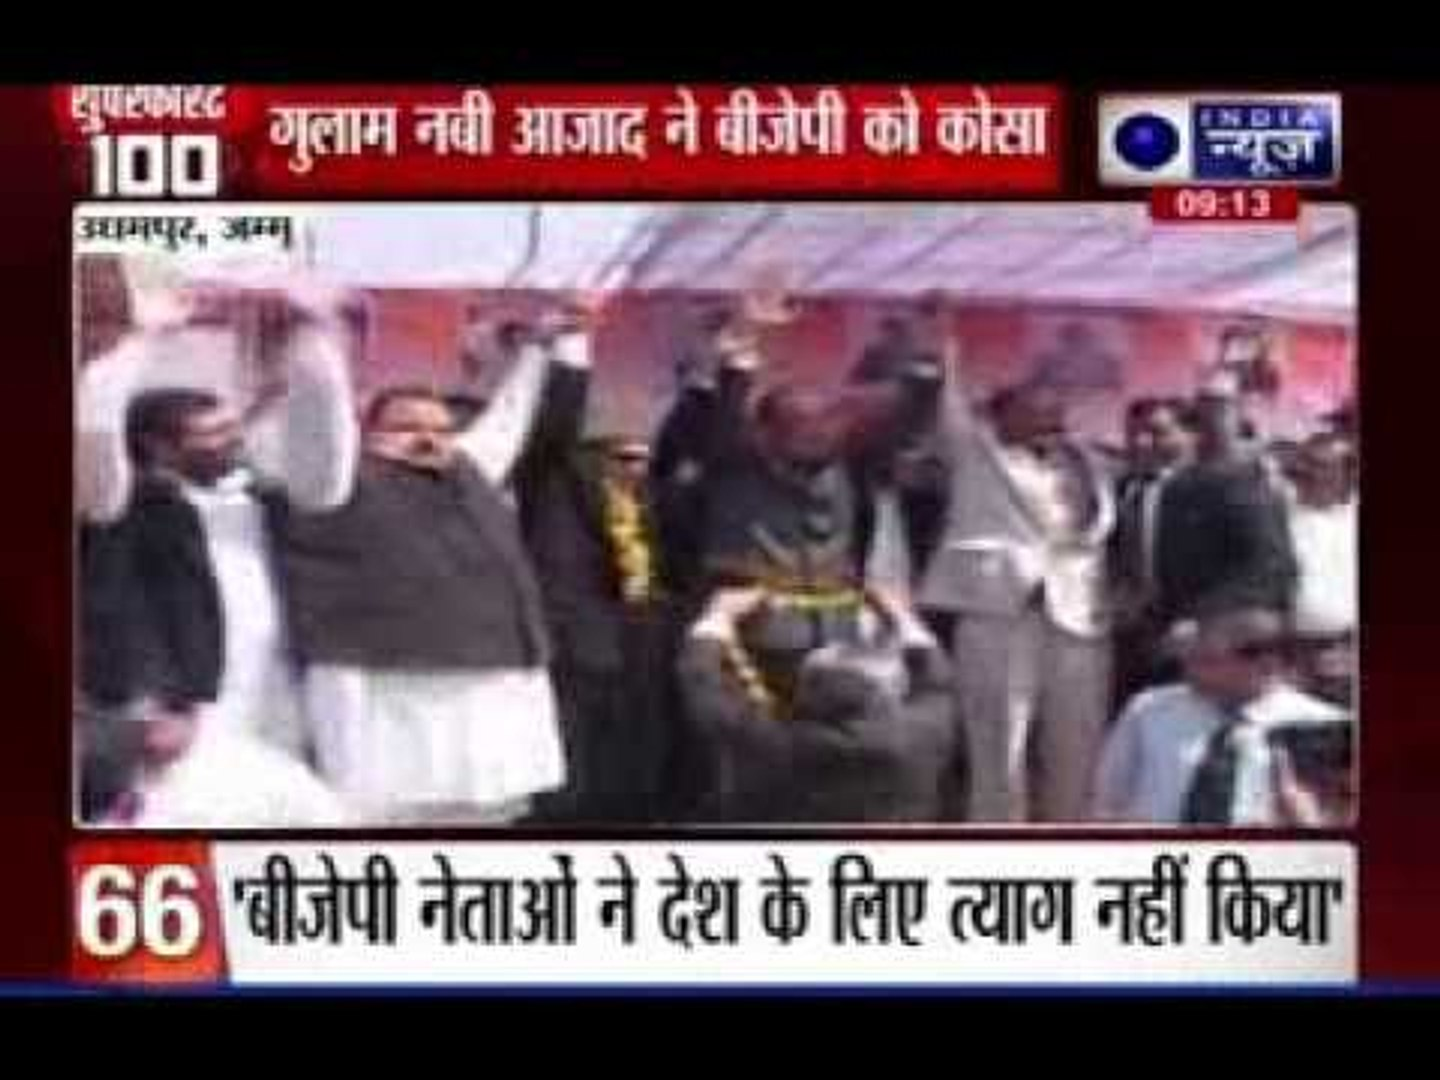 India News: Superfast 100 News on 27th March 2014